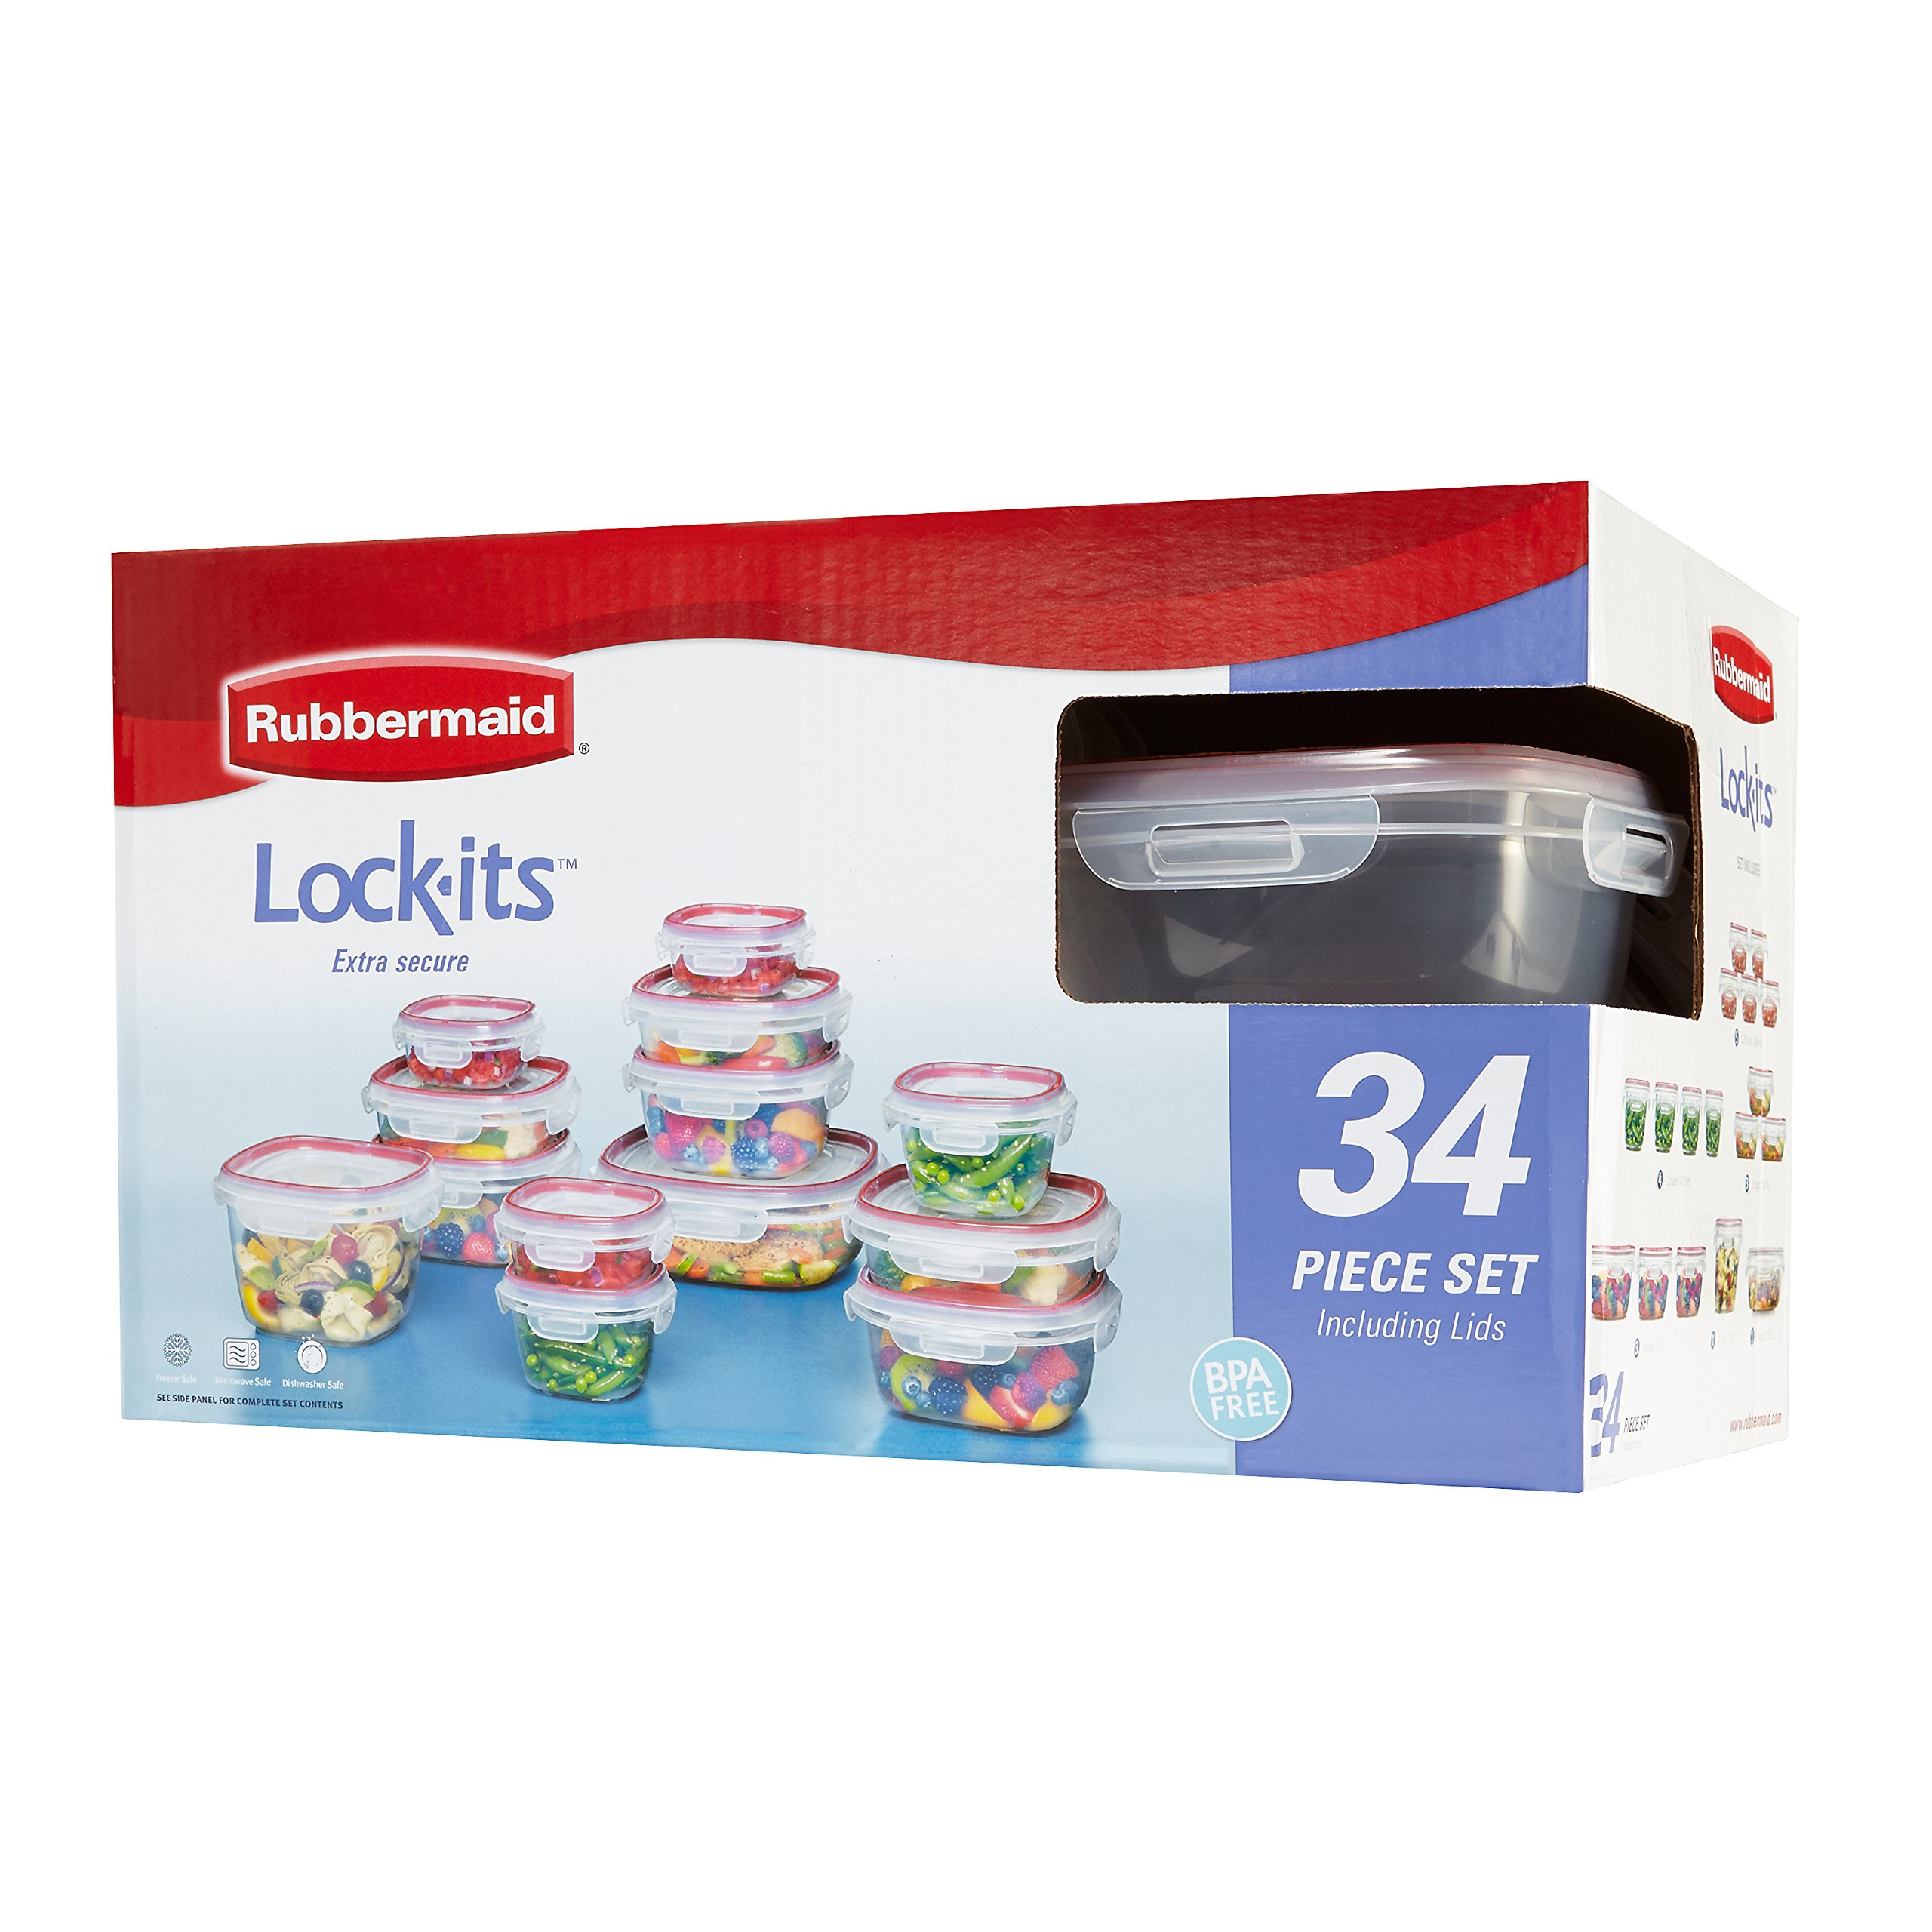 Rubbermaid Easy Find Lids Lock-its Food Storage Container